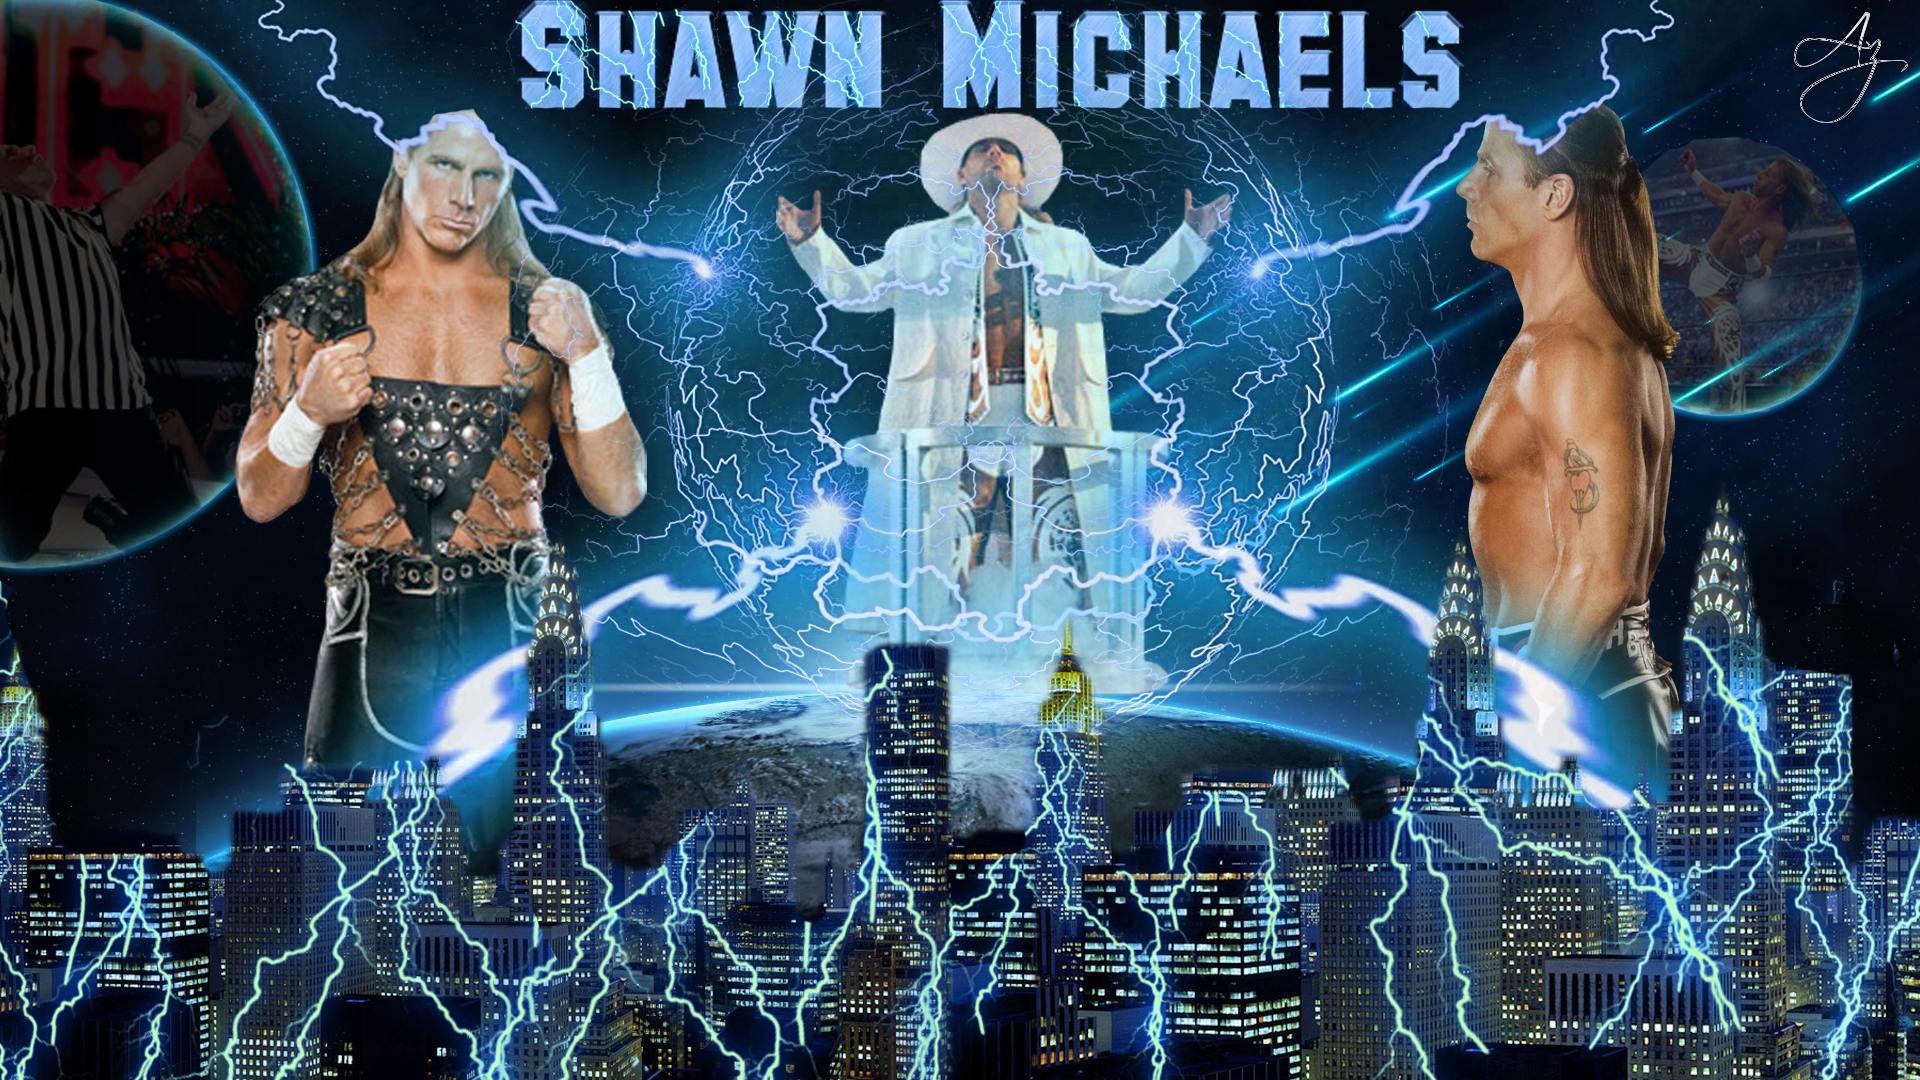 Shawn Michaels HD Wallpaper by FunkyAli on deviantART 1920x1080